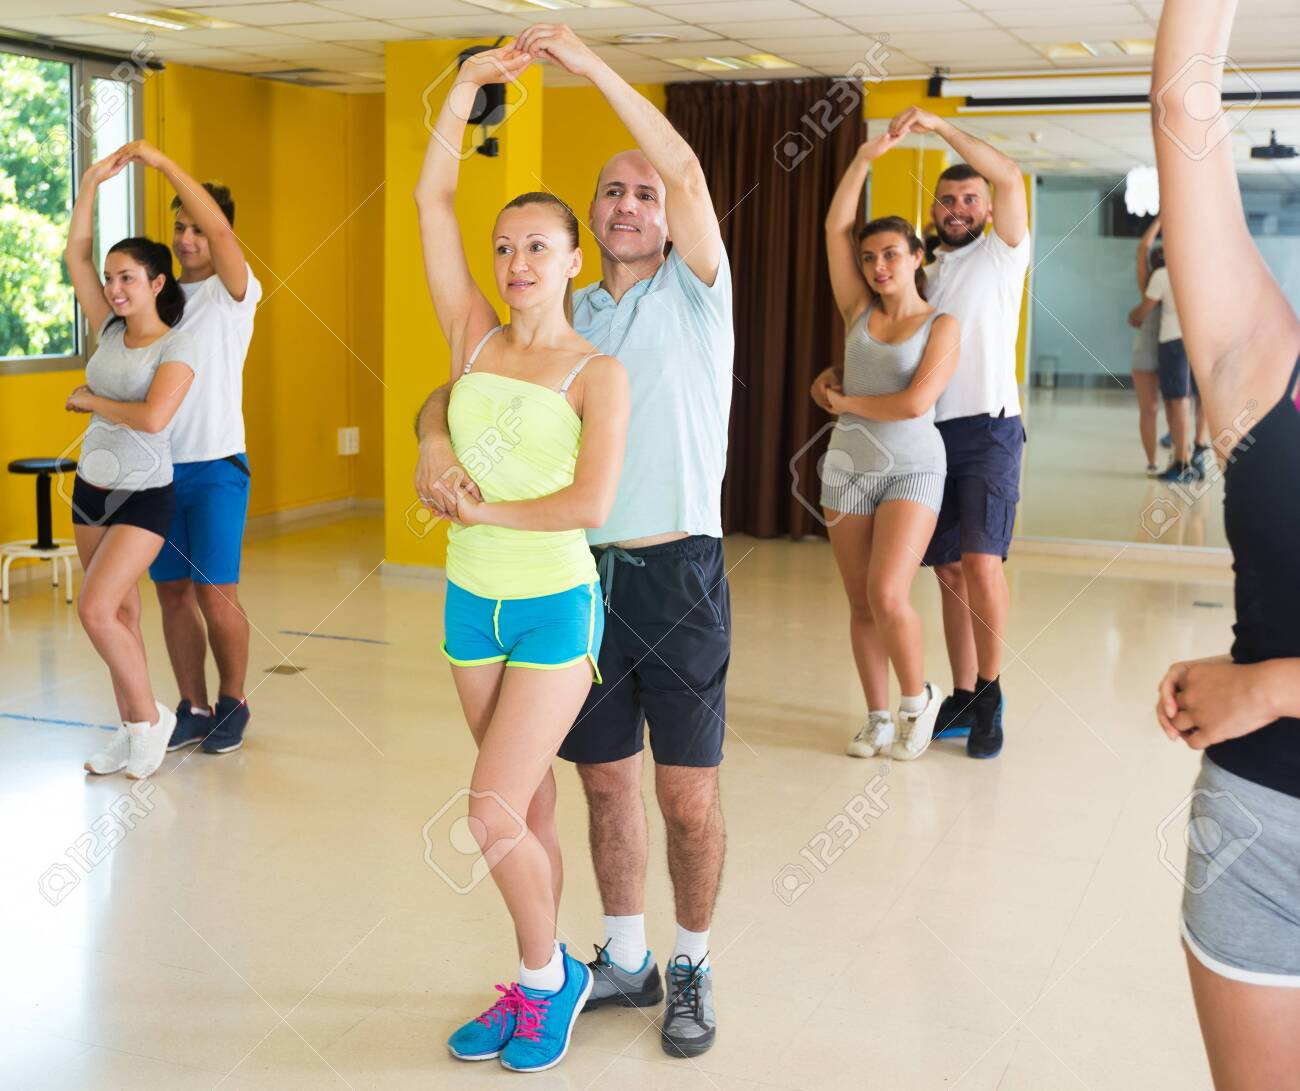 Cheerful adults dancing salsa together in dance studio - 145321576